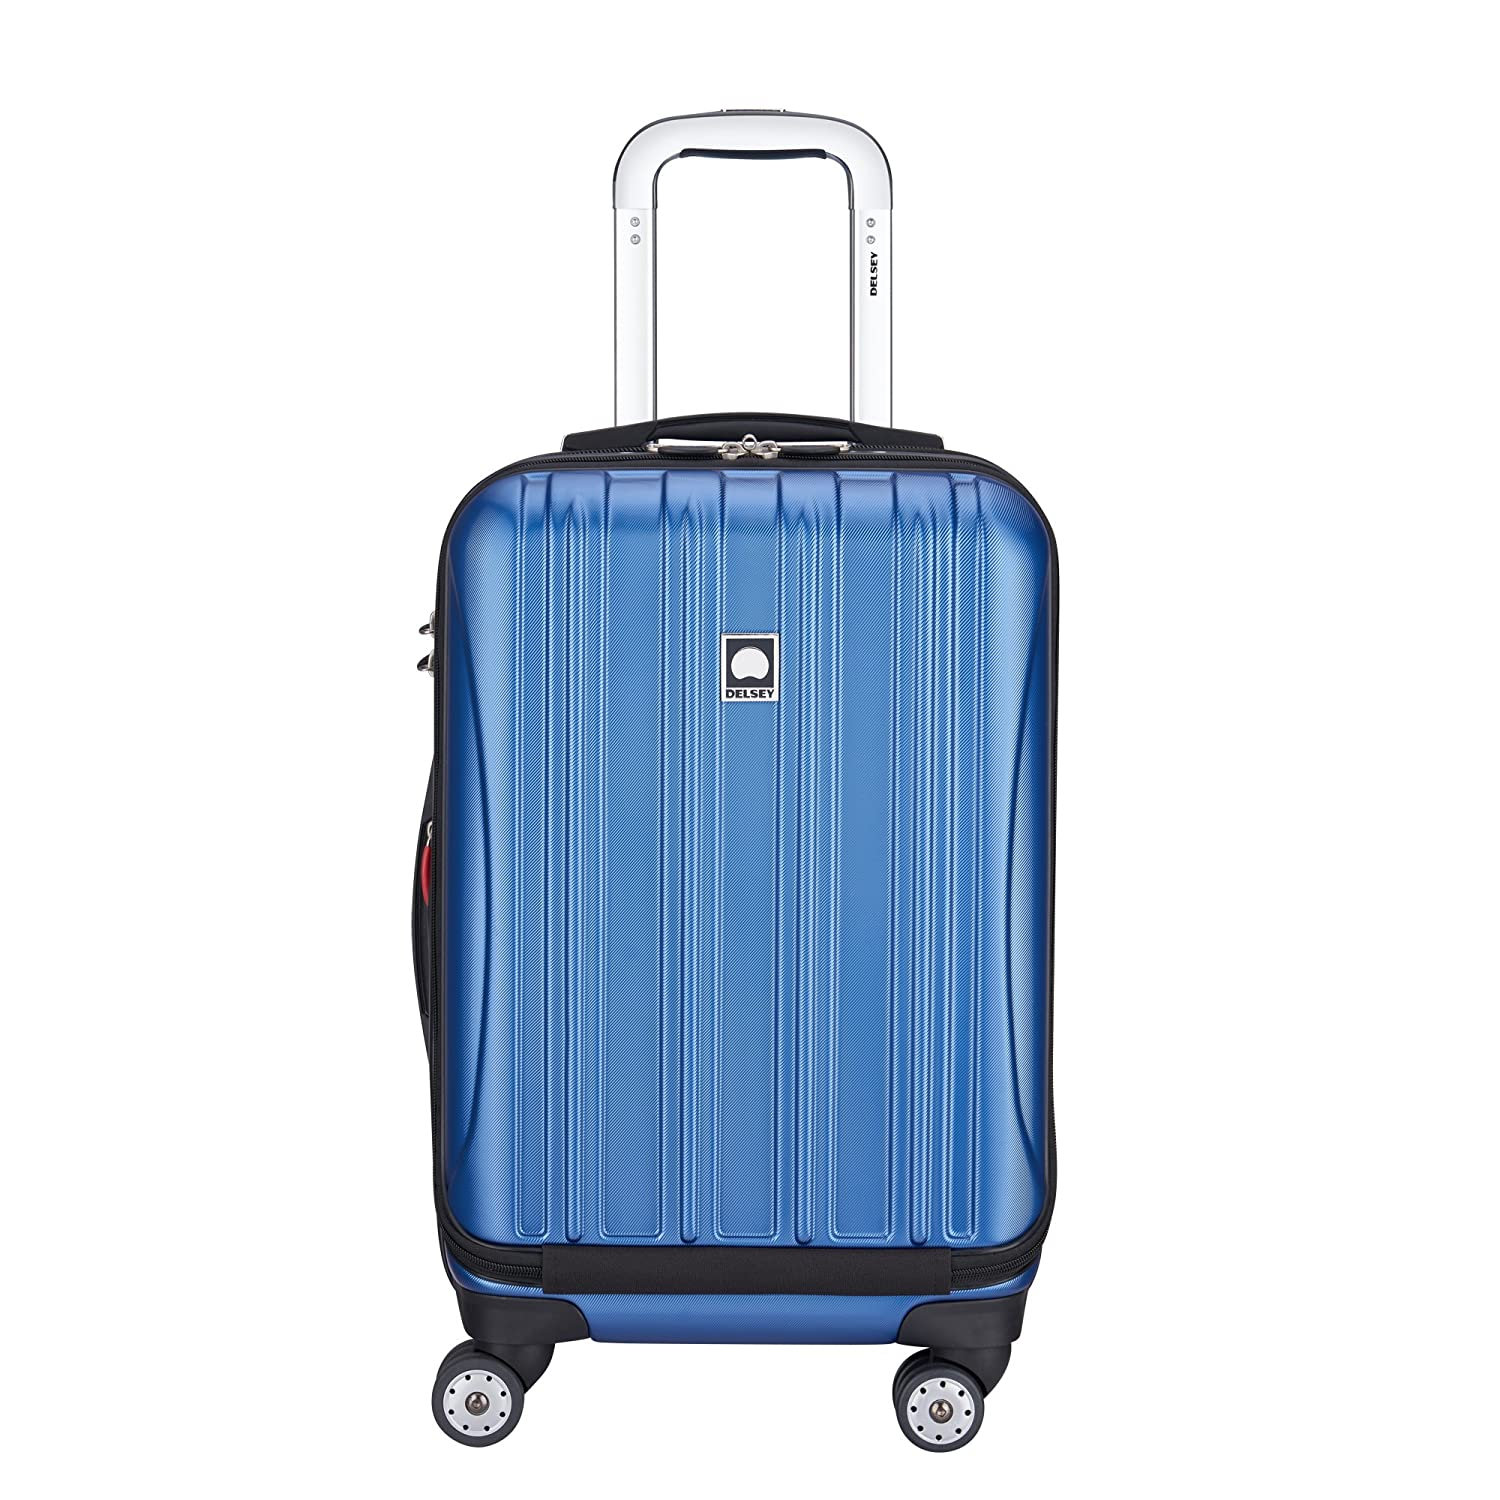 Delsey Luggage Helium Aero, International Carry On Luggage, Front Pocket Hard Case Spinner Suitcase, Cobalt Blue Inc. 07640BD